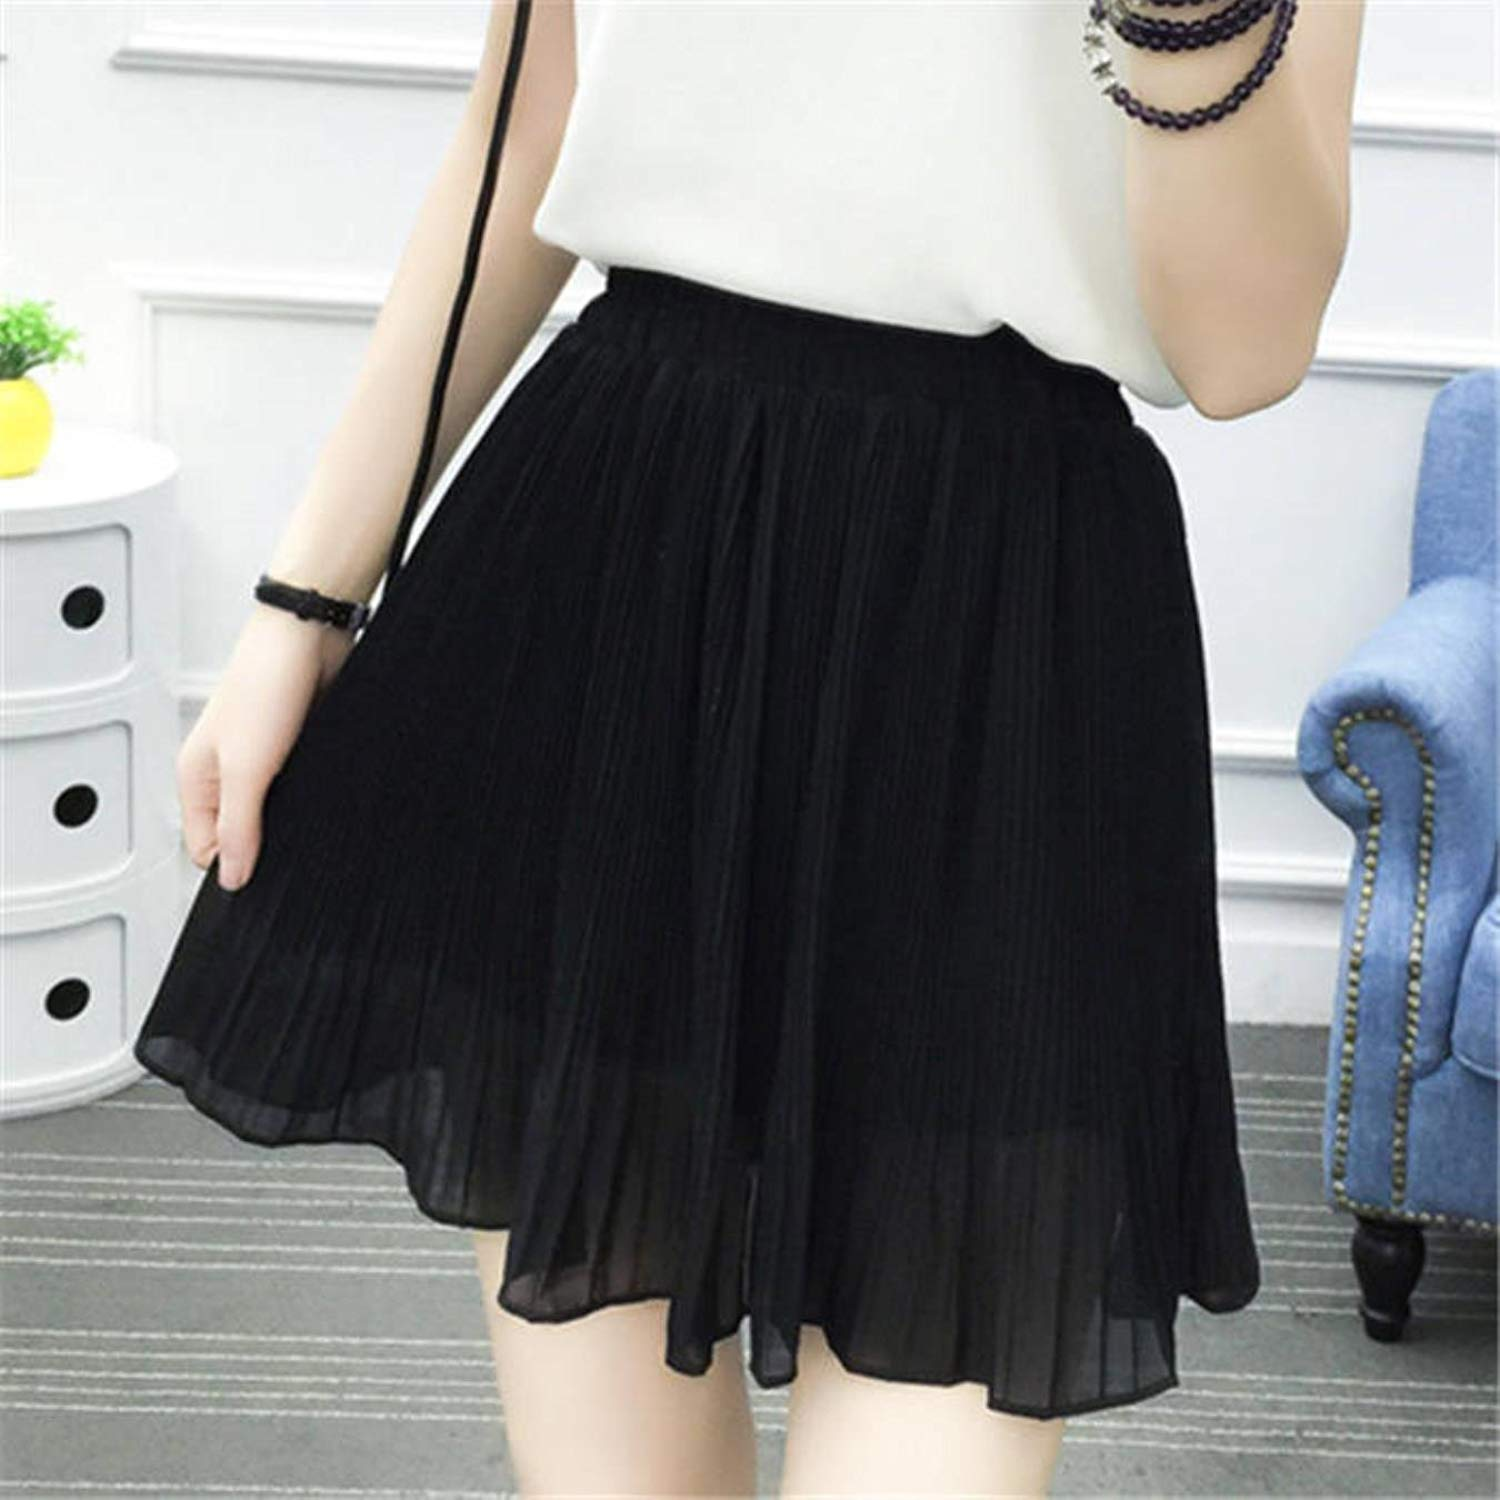 53897f4038 Get Quotations · High Waist Pleated Chiffon Skirt Women Mini Sexy Summer  Short Skirts Womens Leggings Female kawaii Sun